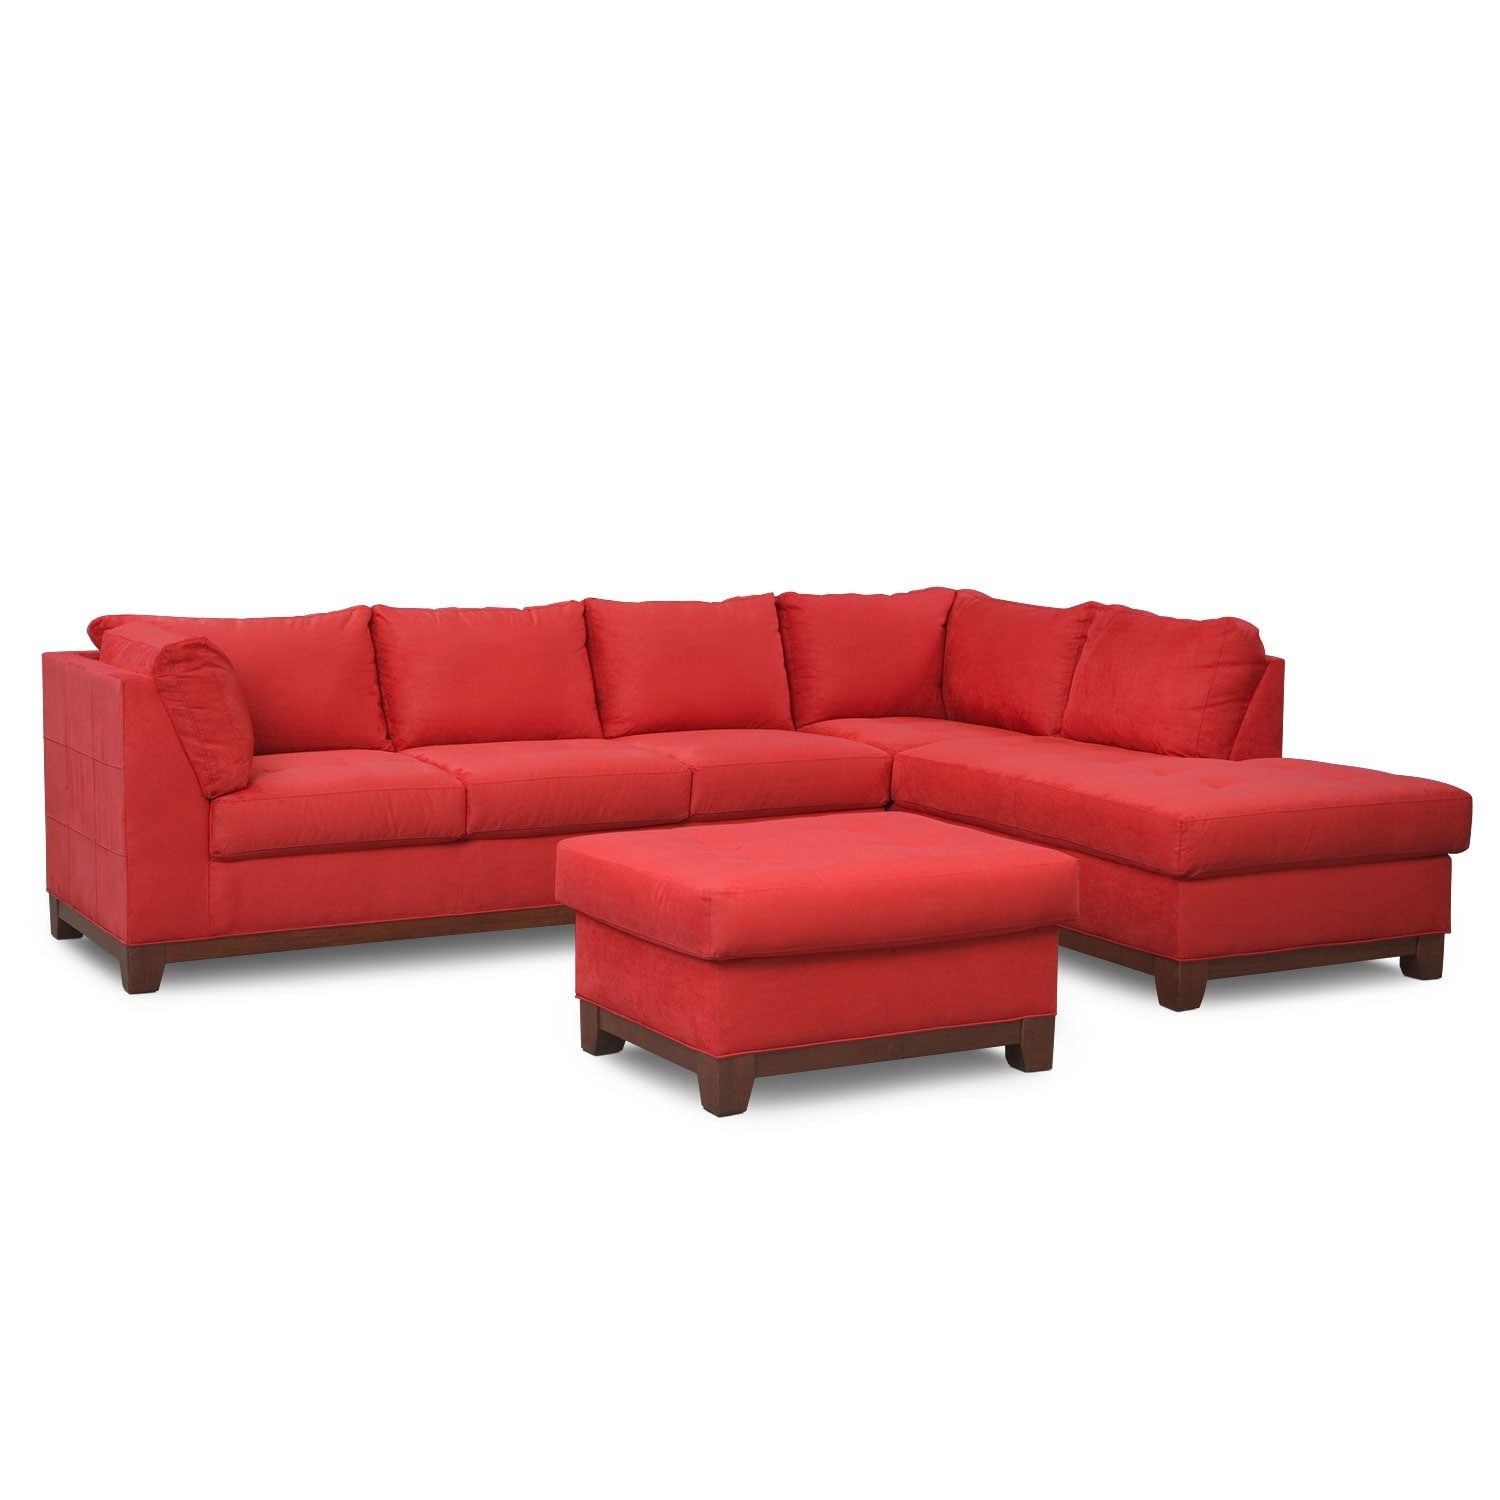 The soho sectional collection red american signature for American signature furniture commercial chaise